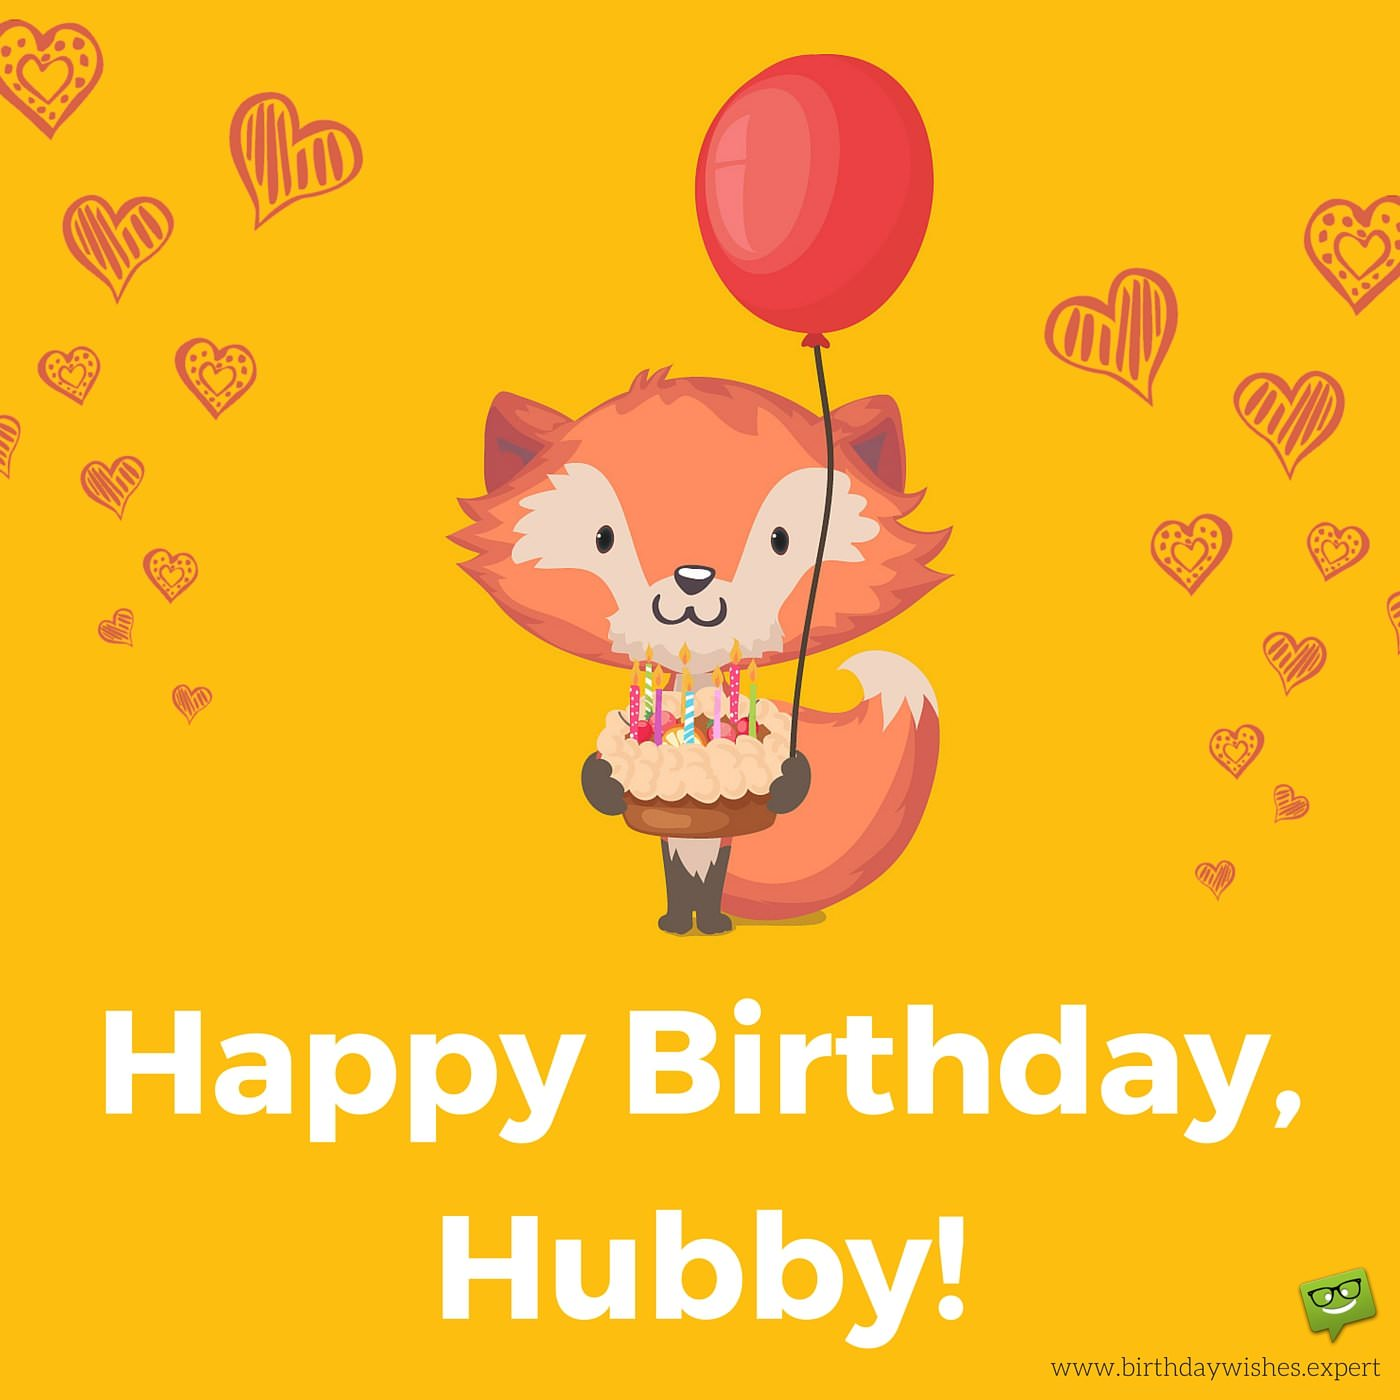 Cute Love Quotes For Husband On His Birthday: 50 Romantic Birthday Wishes For Your Husband